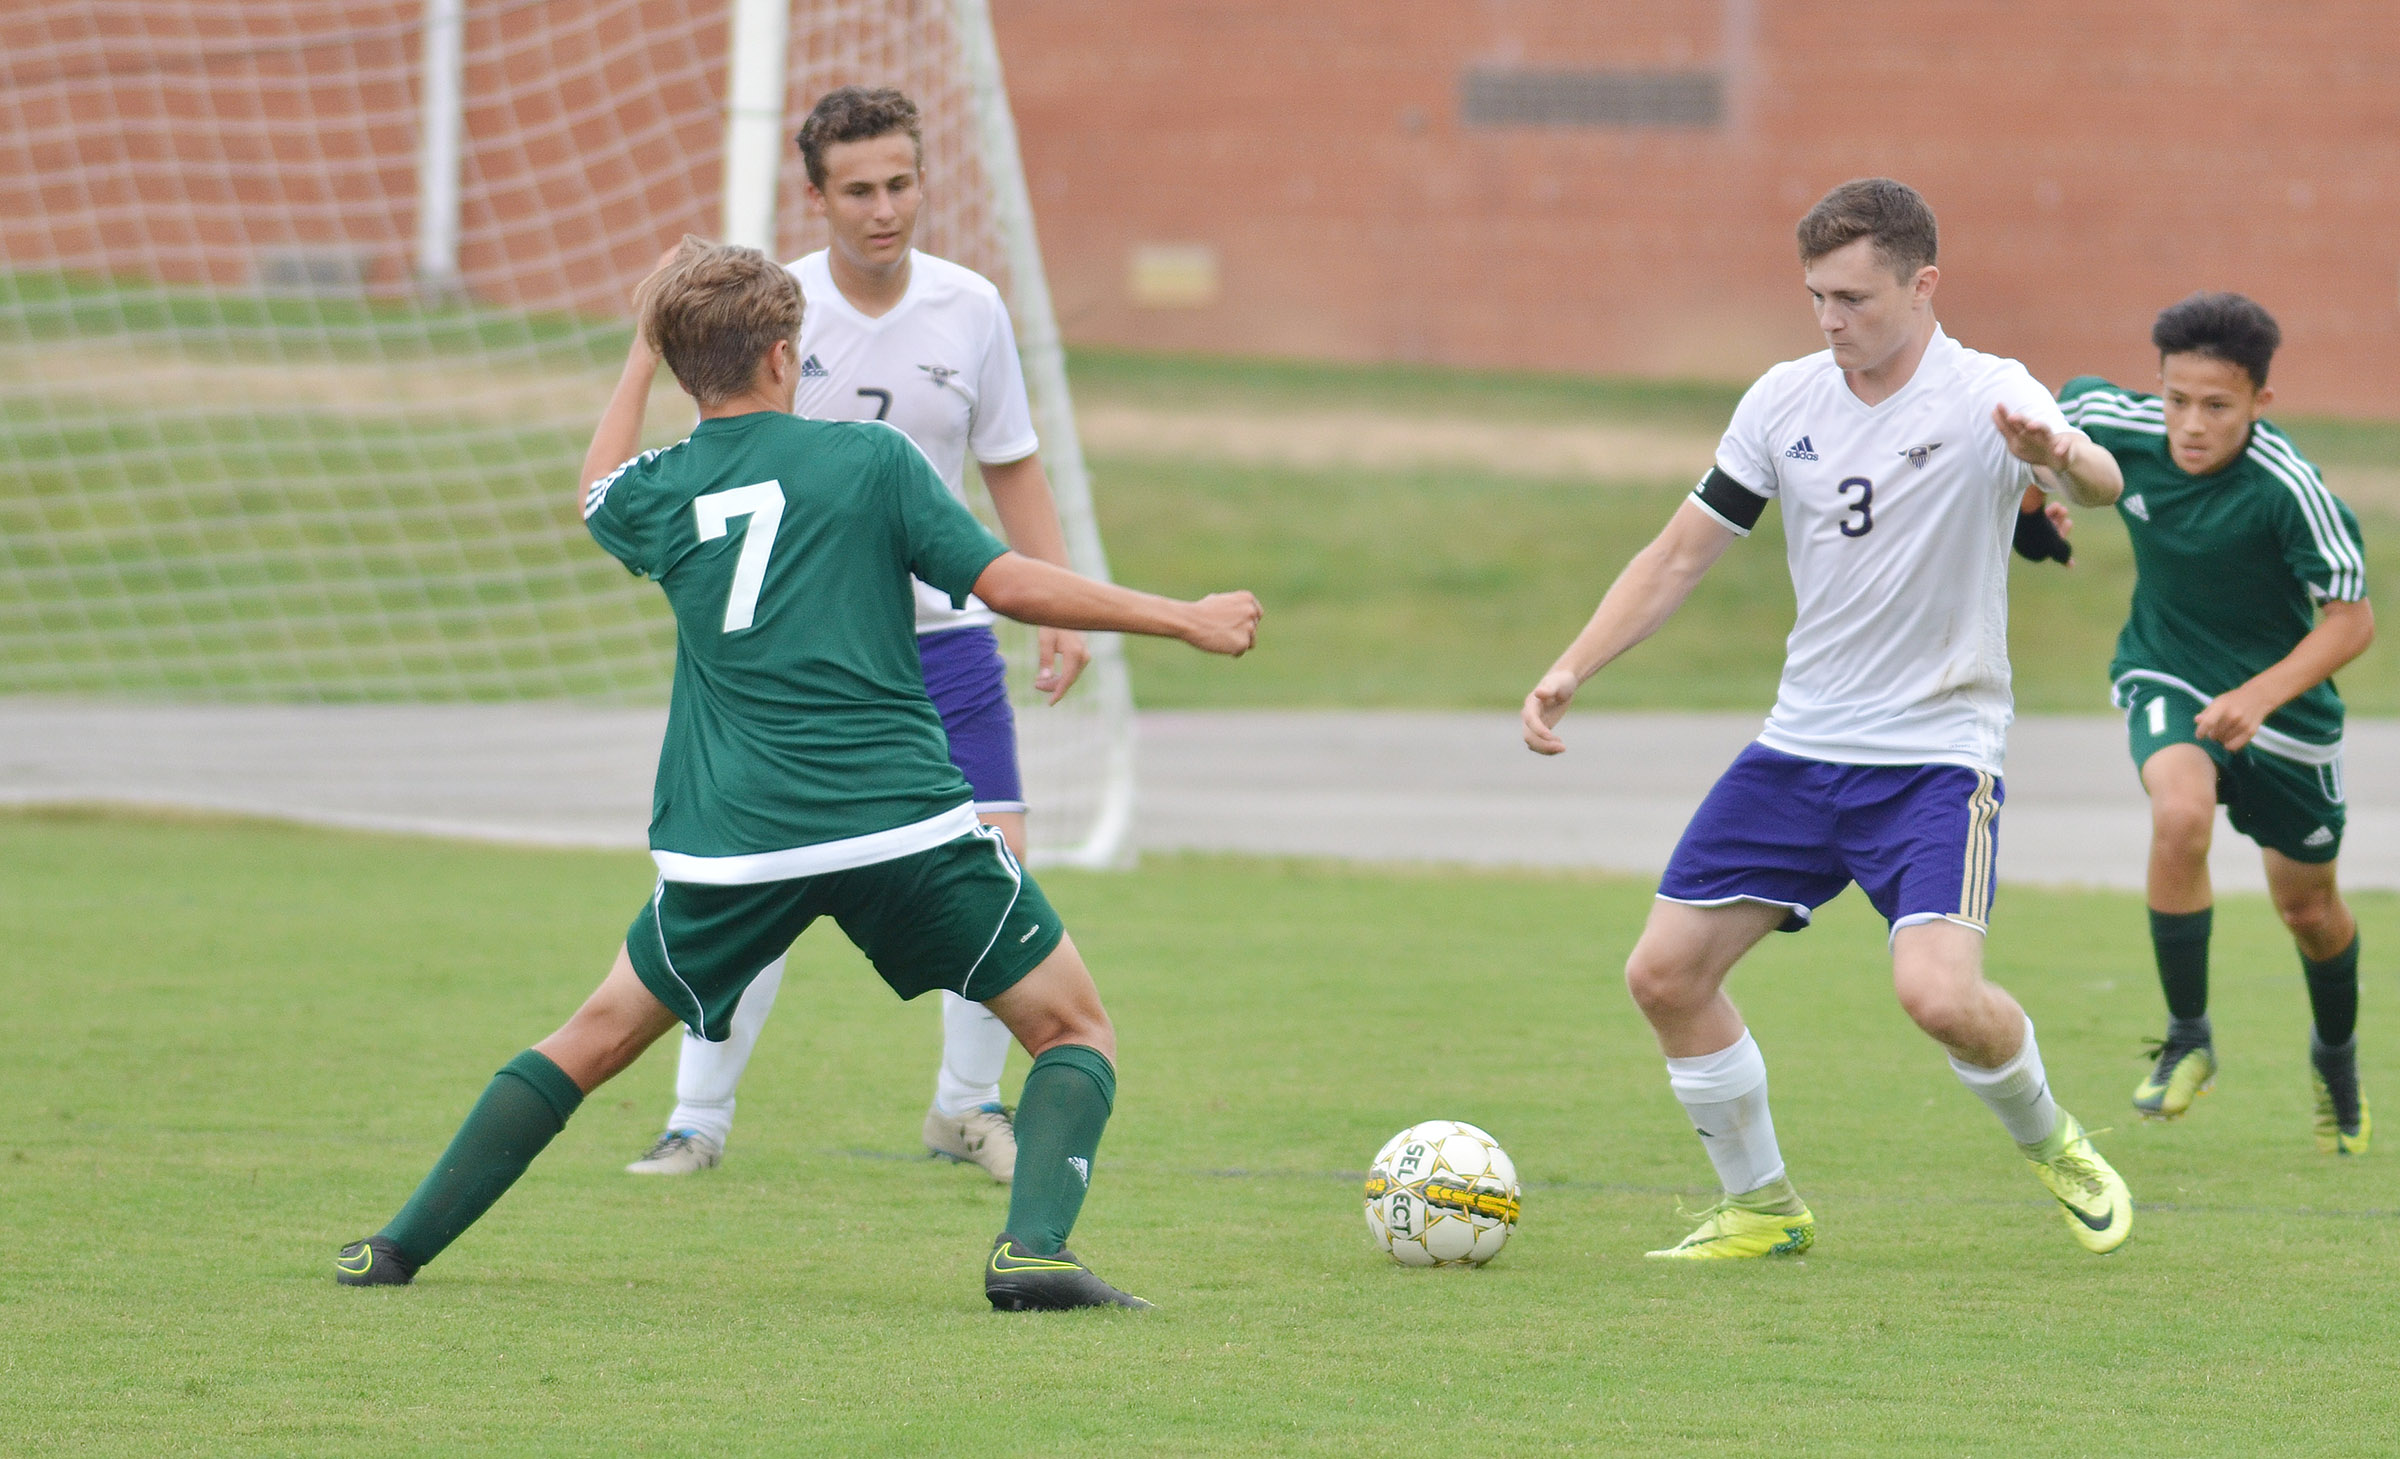 CHS junior Brody Weeks, at left, and senior Bryce Richardson play defense.